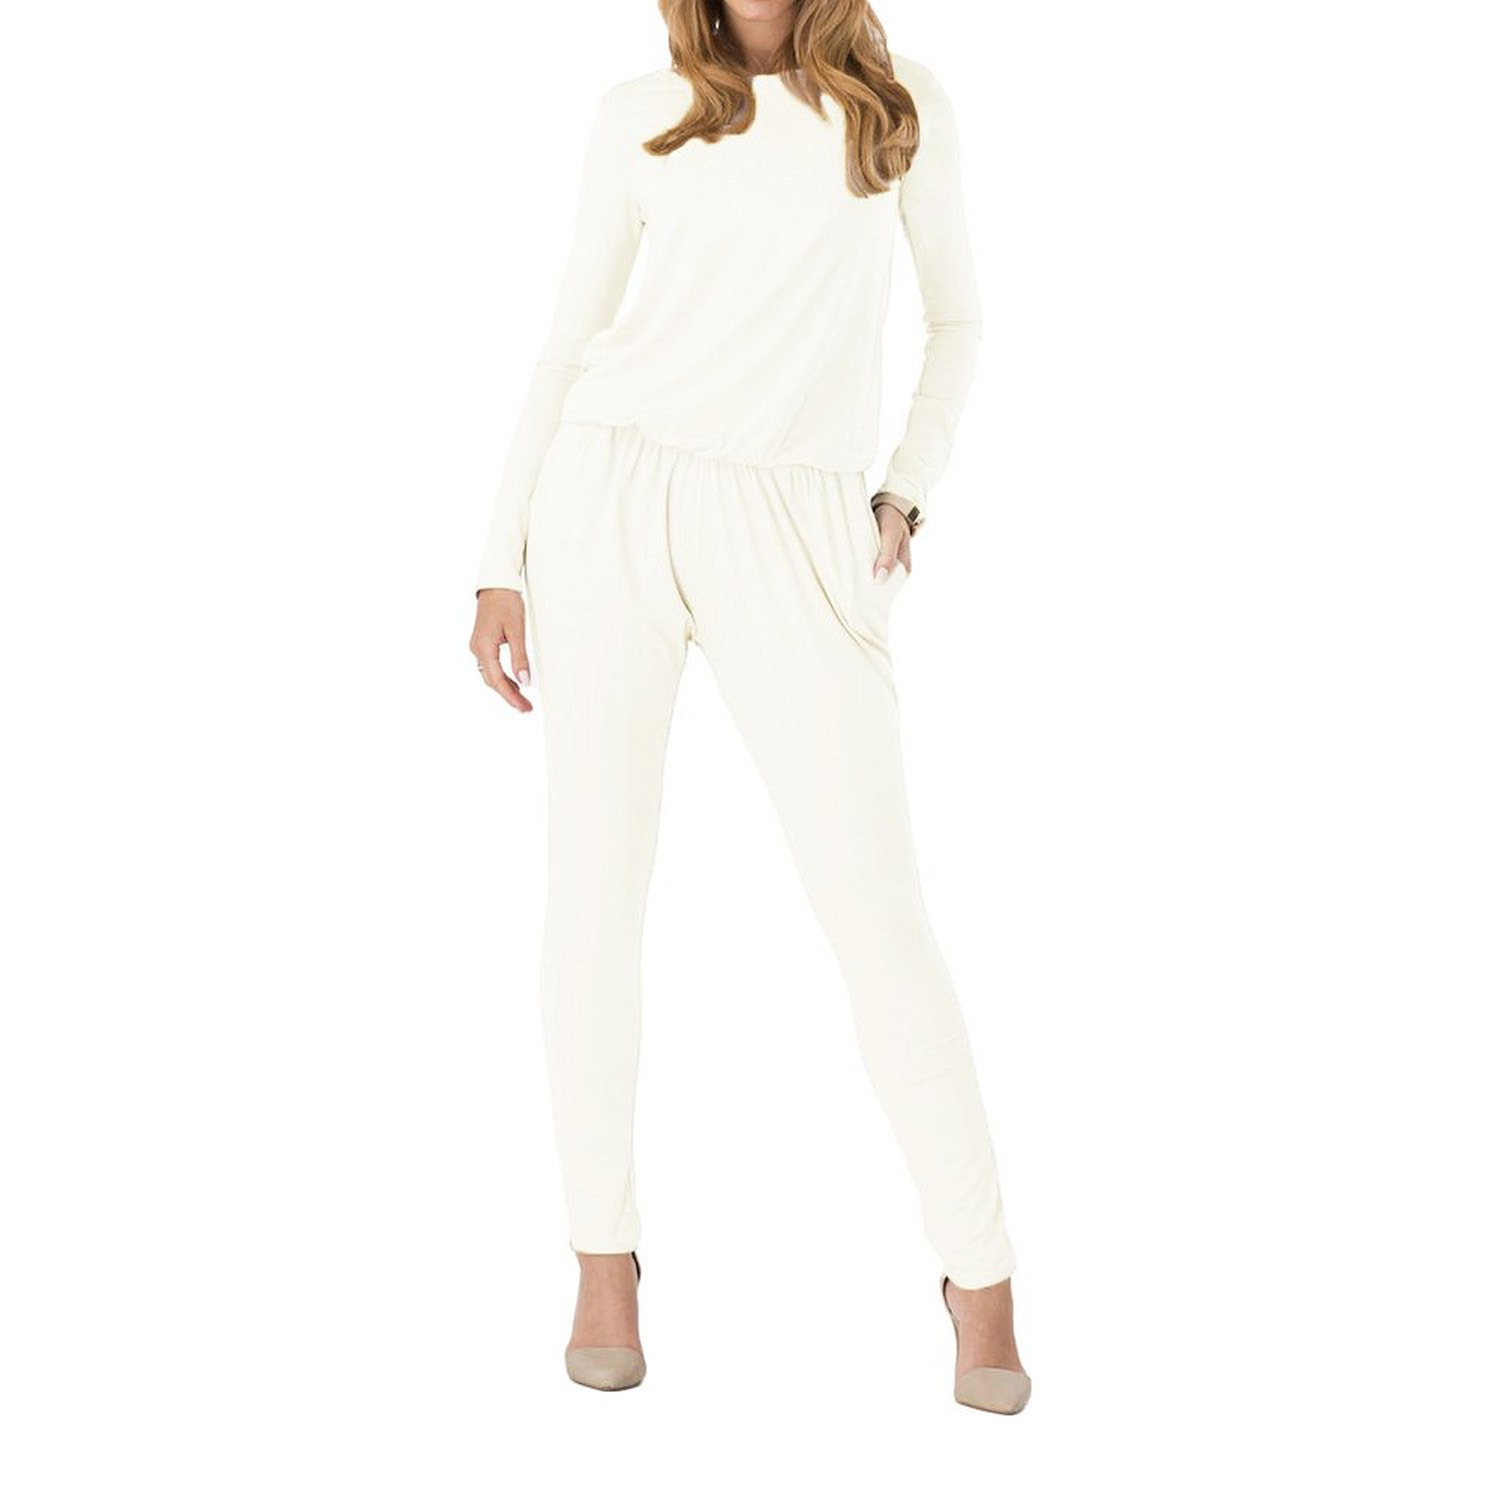 IMC Women Jumpsuits Rompers Long Sleeve Side Pockets Elastic Waist Rompers White L